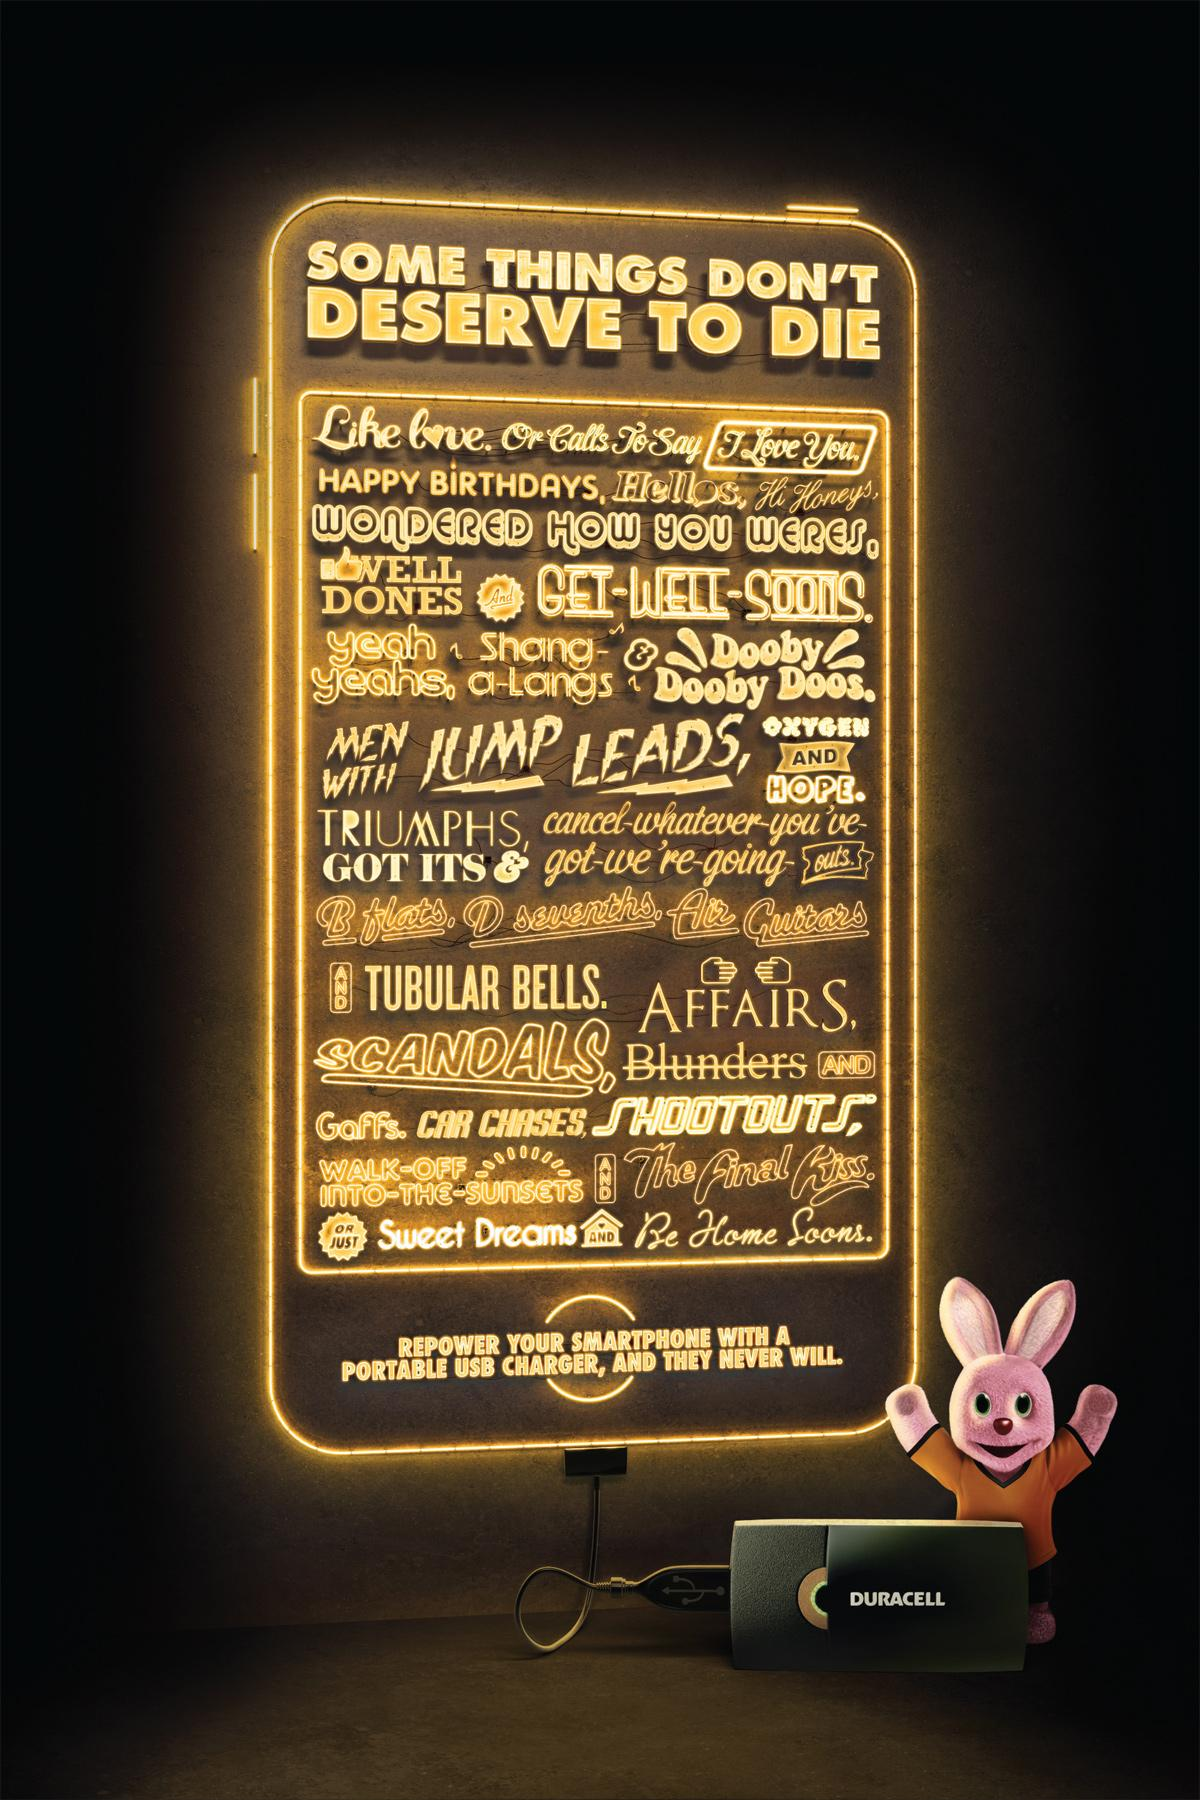 Duracell Print Ad -  Some things don't deserve to die